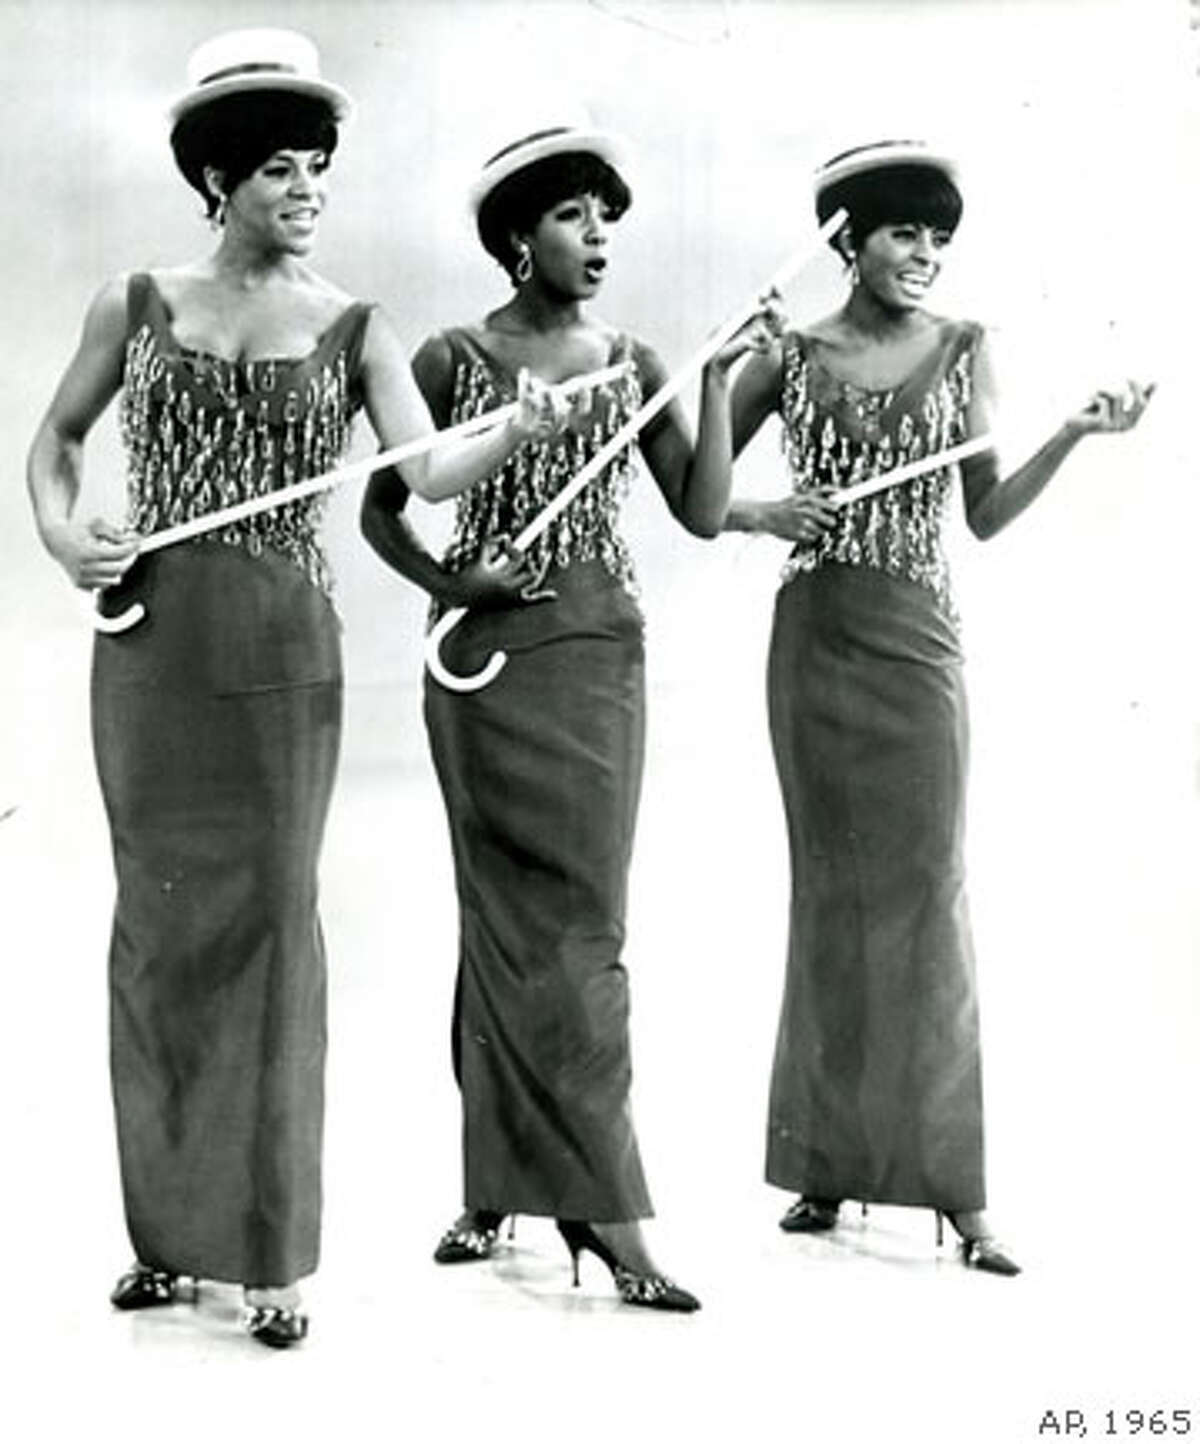 Detroit trio known as the Supremes have become a million-dollar enterprise in the space of a year through a combination of glamour trappings and a new rock n roll sound. They're pictured during a routine they'll do on an upcoming Red Skelton television show. Left to right: Florence Ballard, Mary Wilson, Diana Ross AP Wire photo 1965 Chronicle Archive Library